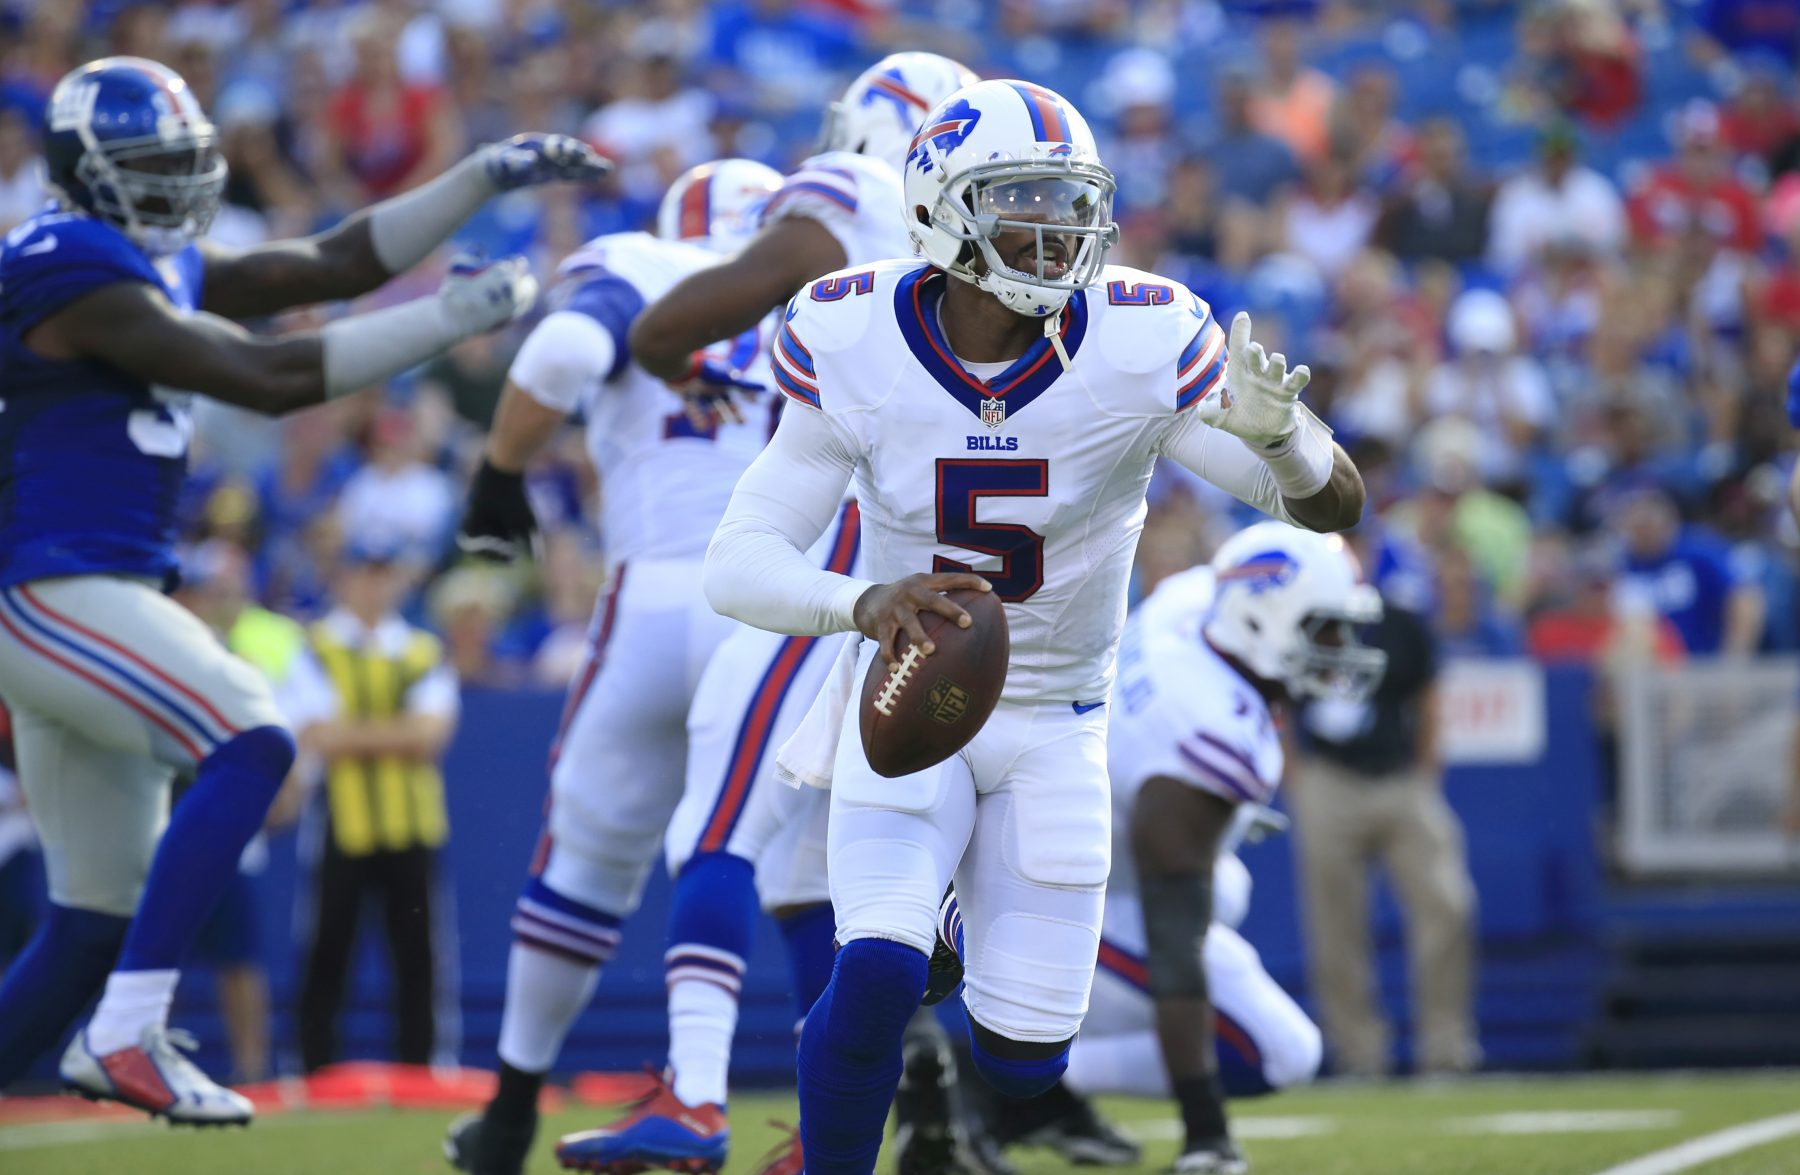 Buffalo Bills Tyrod Taylor runs against the New York Giants during first quarter action at New Era Field on Aug. 20. (Harry Scull Jr./Buffalo News)